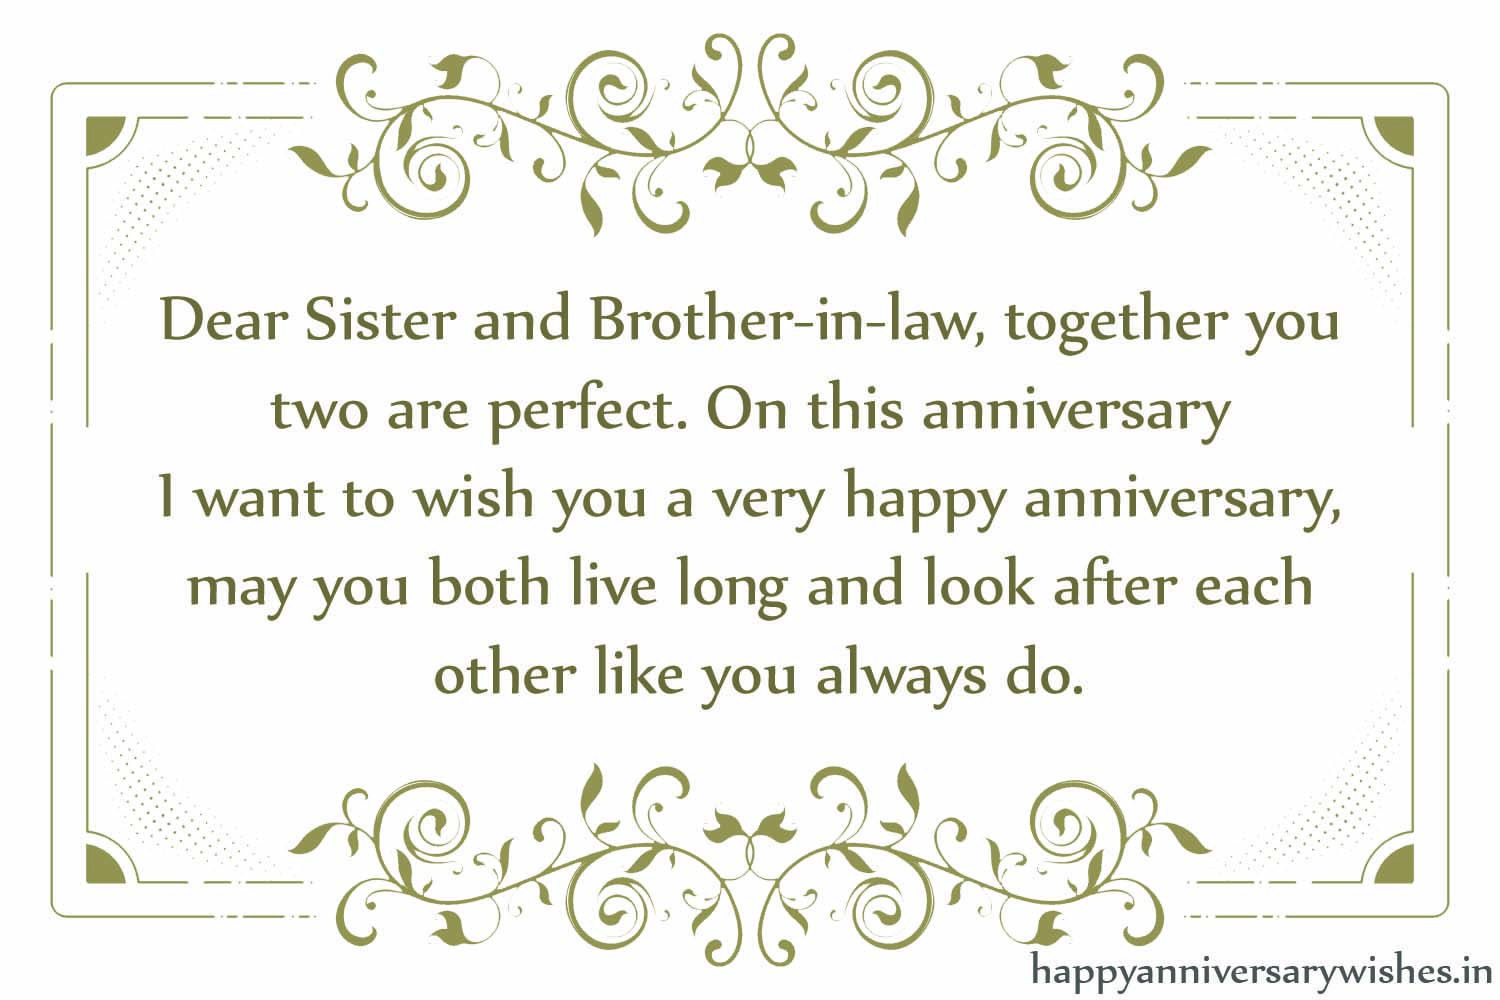 1st Anniversary Wishes For Sister Anniversary Quotes For Sister Anniversary Wish Wedding Anniversary Wishes Happy Anniversary Wishes Happy Anniversary Quotes